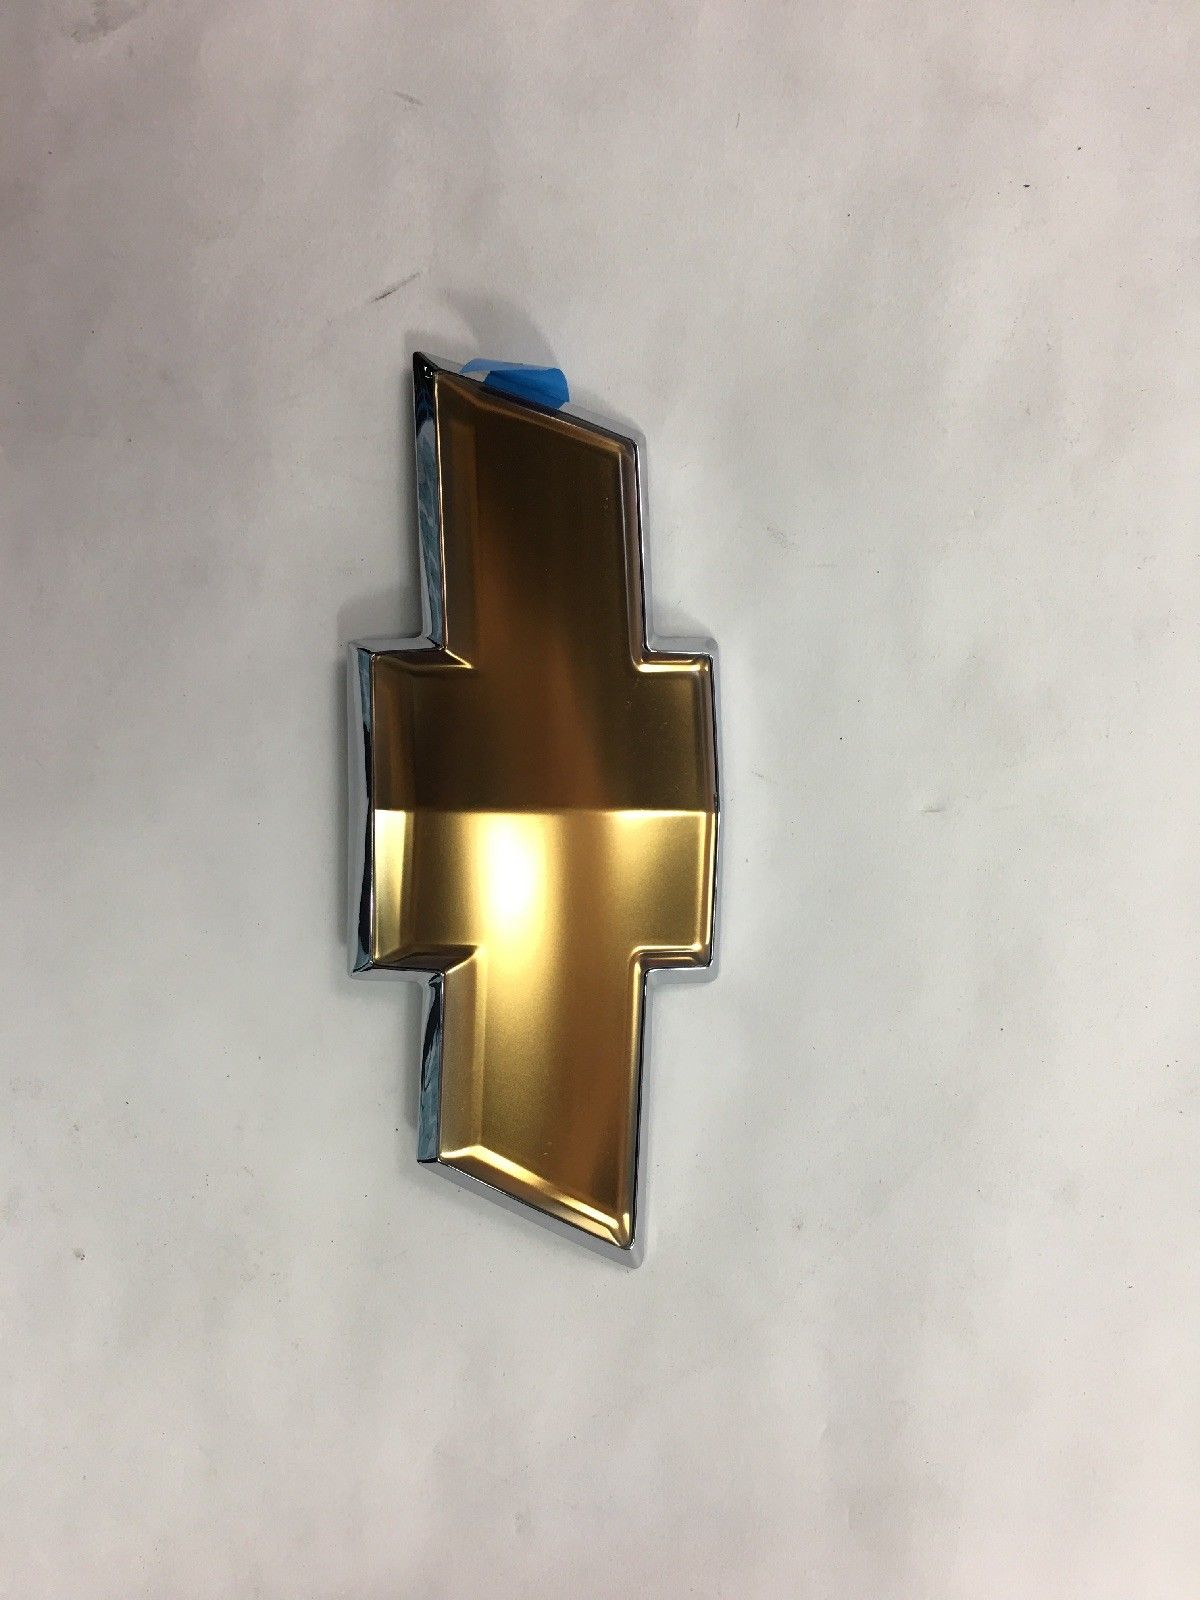 New OEM Chevy Cobalt Gold Bow Tie Front Grille Emblem 2005-2010 10359862 10359862